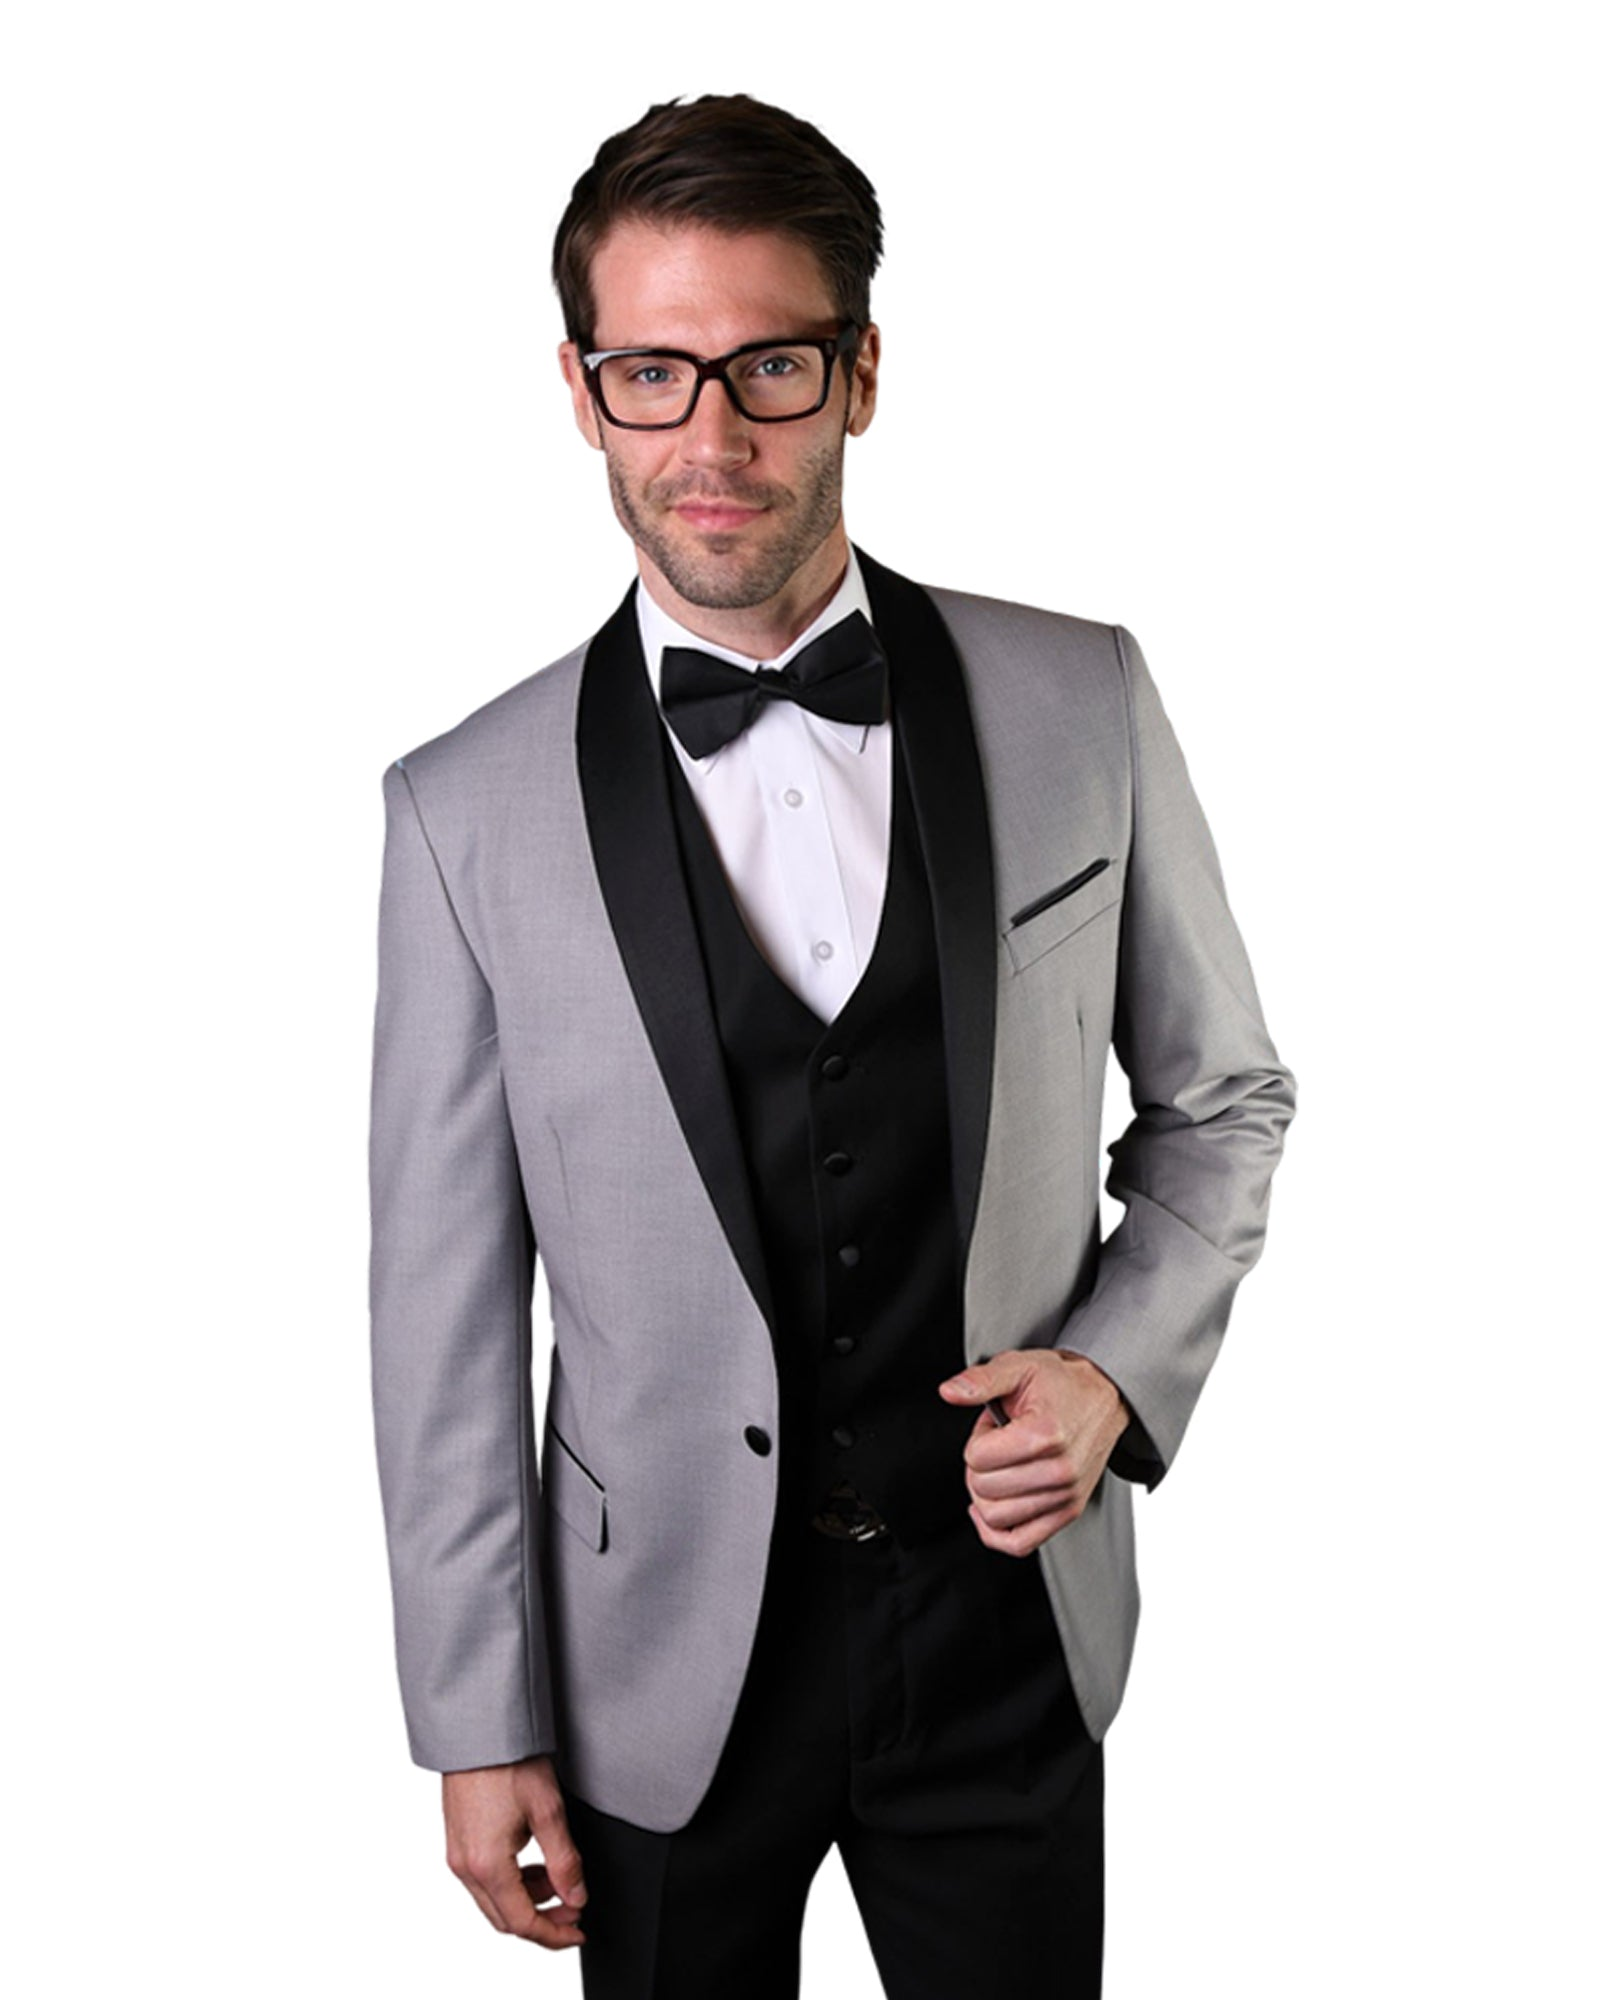 Silver With Black Shawl Dinner Jacket Tuxedo Rental - Rainwater's Men's Clothing and Tuxedo Rental